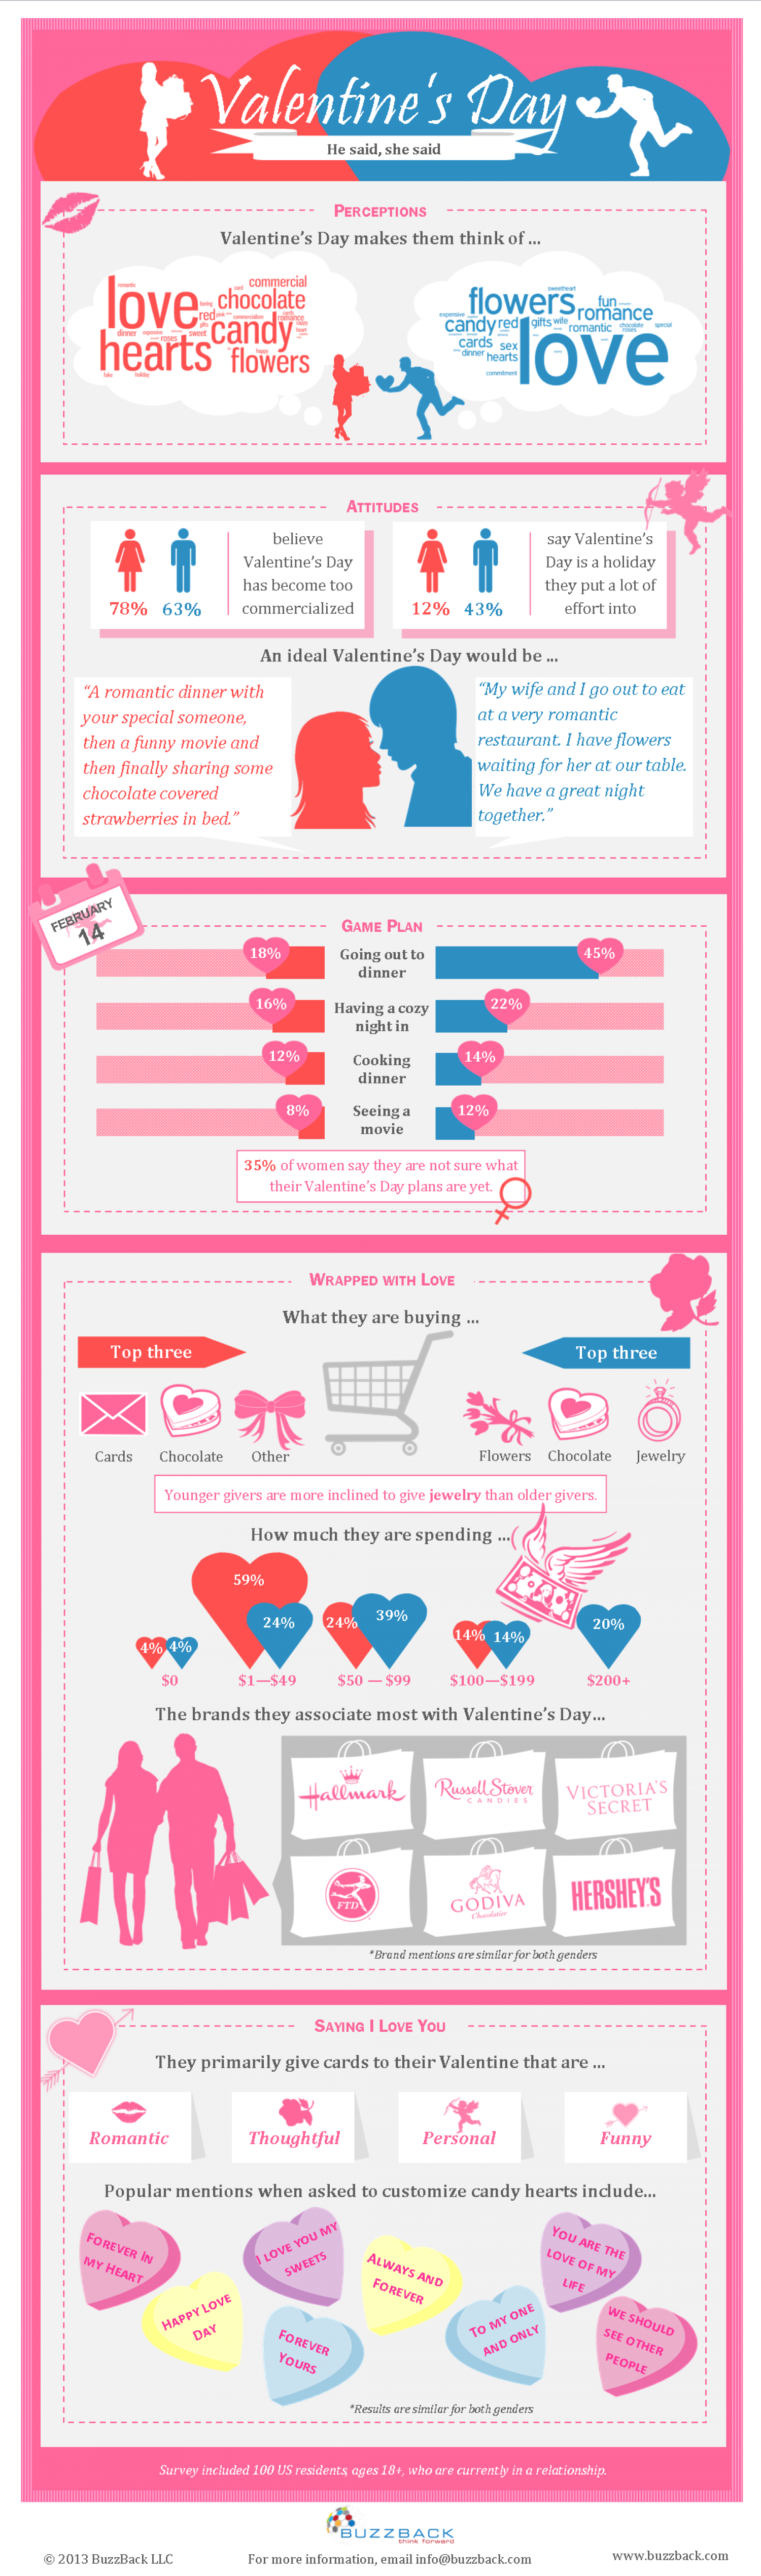 He Said. She Said. Valentine's Day Revealed. Infographic